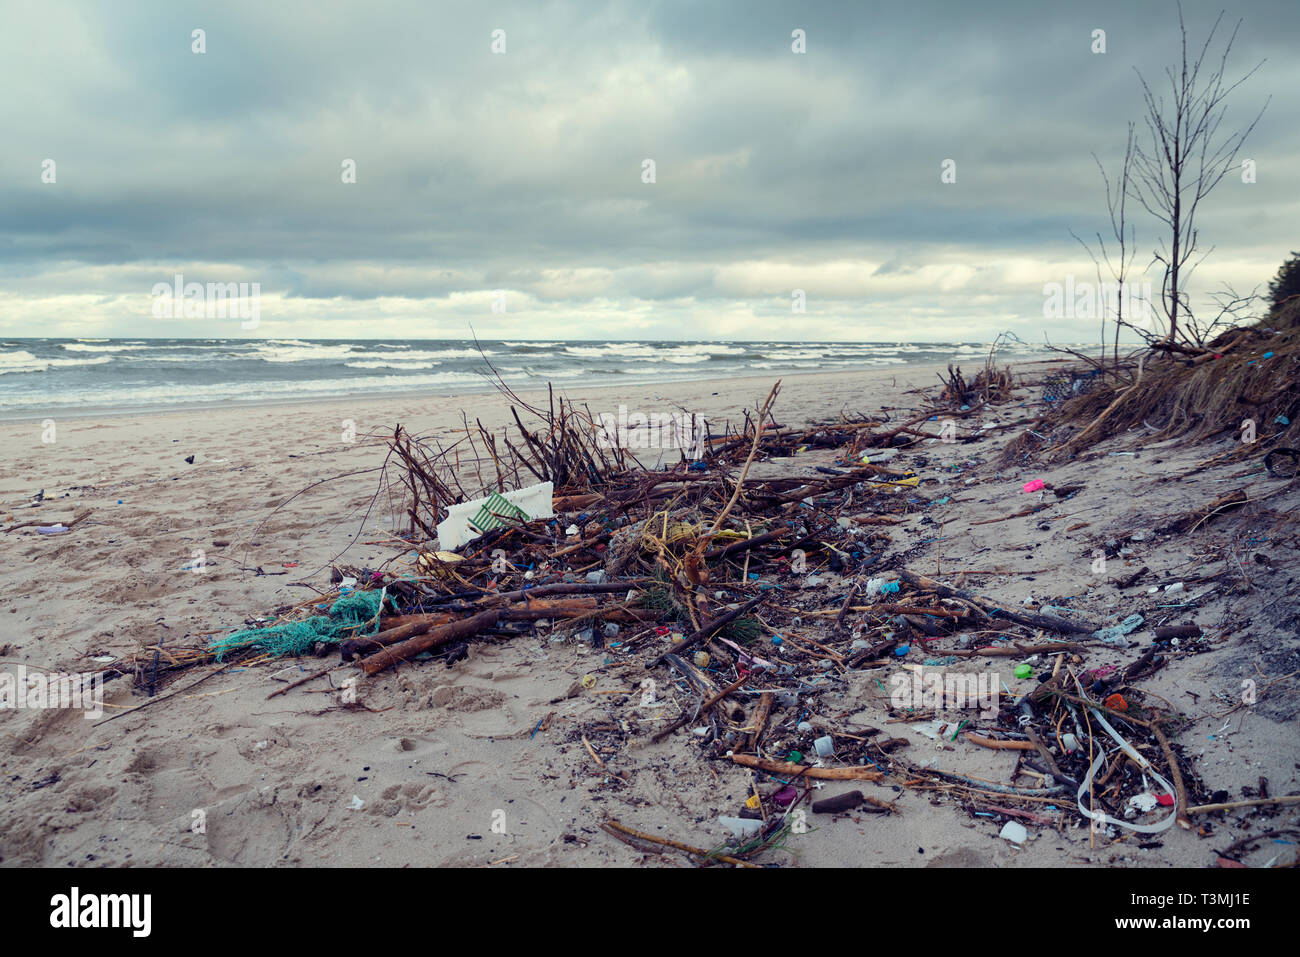 Polluted beach in the North Poland Different kind of waste castaway after a sea storm Selective focus - Stock Image